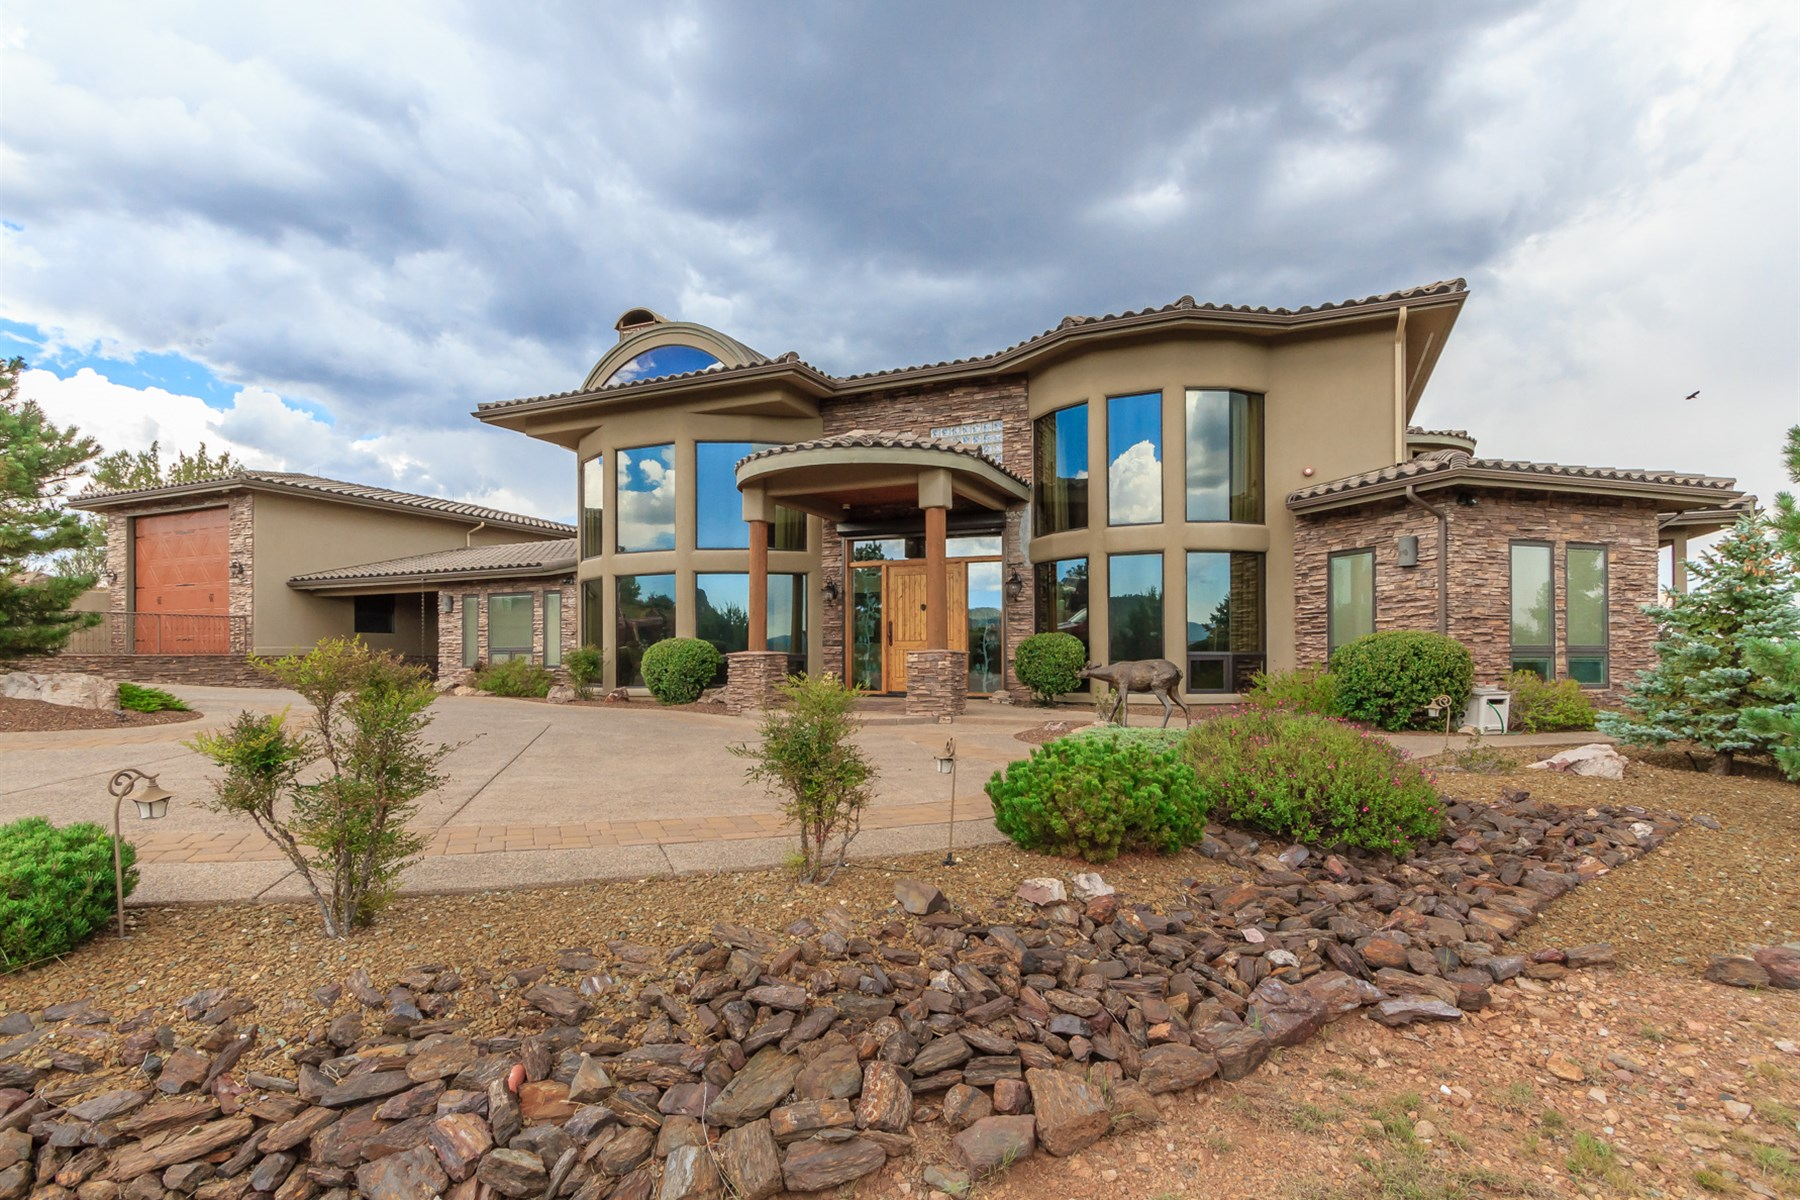 一戸建て のために 売買 アット Magnificant custom home near the highest point in forest trails 2004 PROMONTORY Prescott, アリゾナ 86305 アメリカ合衆国